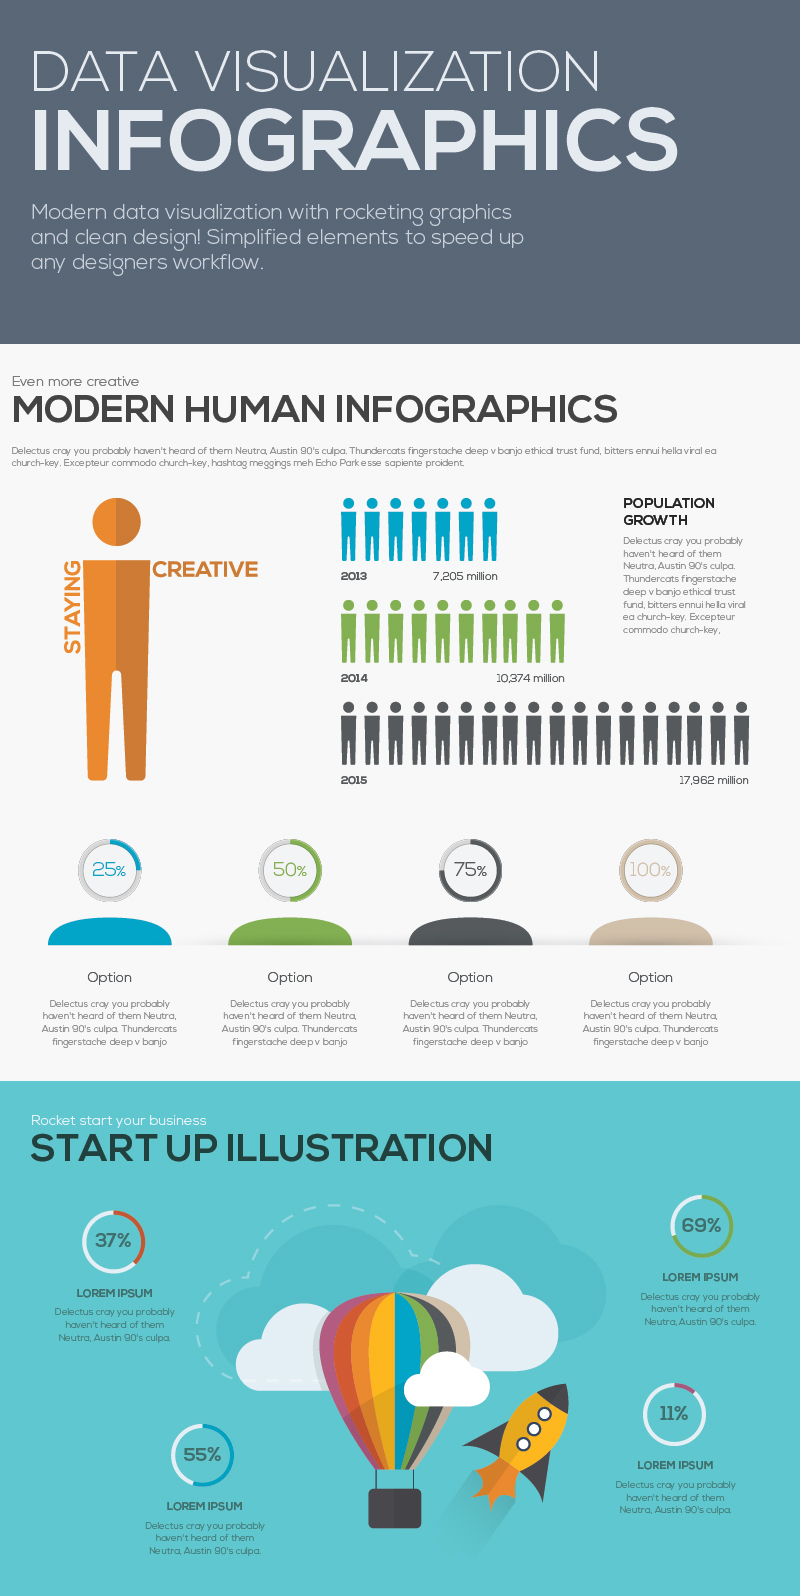 free infographic templates - 10 free infographic vector templates on behance